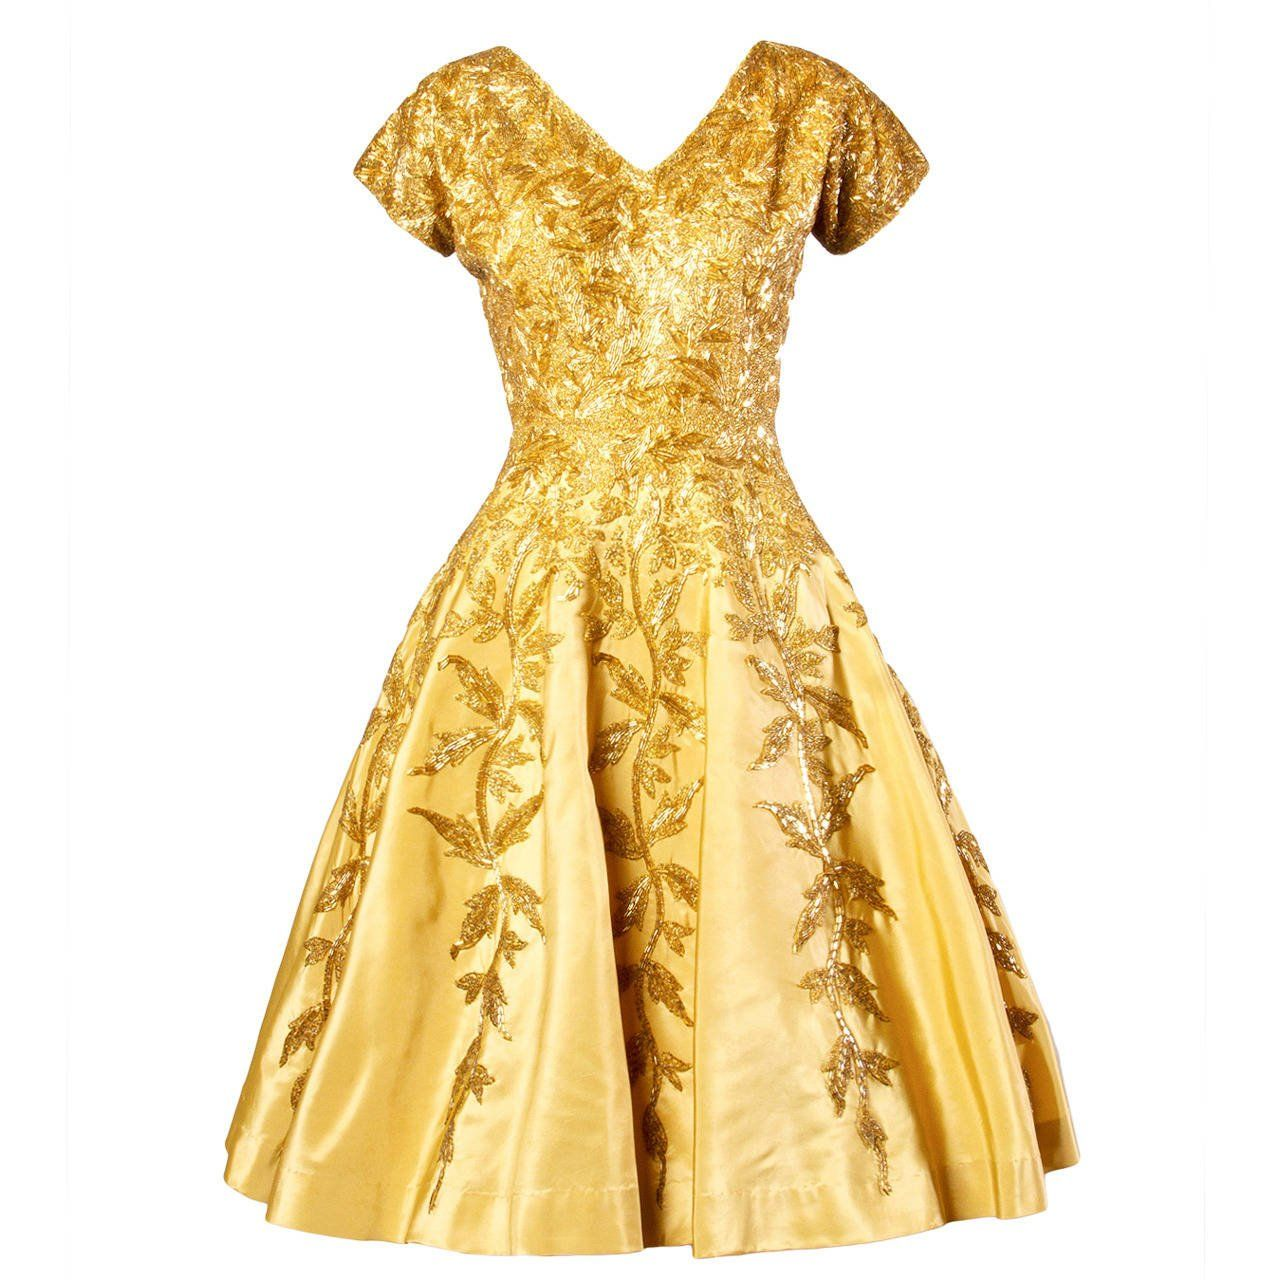 Vintage 1950s 50s Gold Yellow Hand Beaded Couture Silk Cocktail Dress Short White Cocktail Dresses White Vintage Dress Cocktail Dress Yellow [ 1280 x 1280 Pixel ]